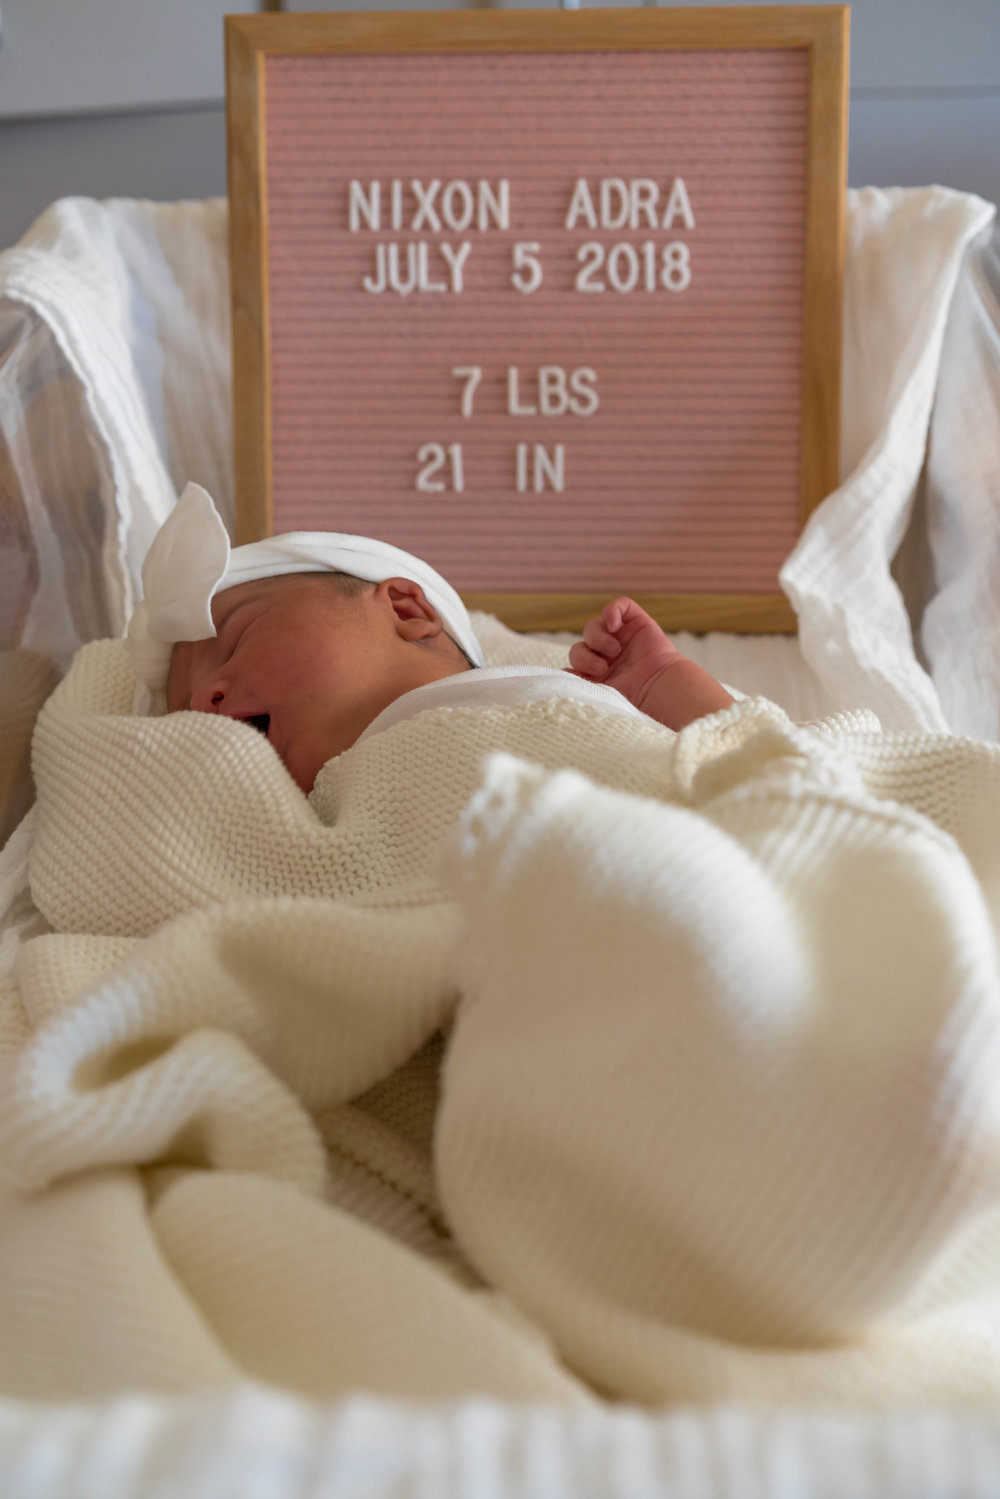 nixon-adra-birth-story (11 of 13).jpg